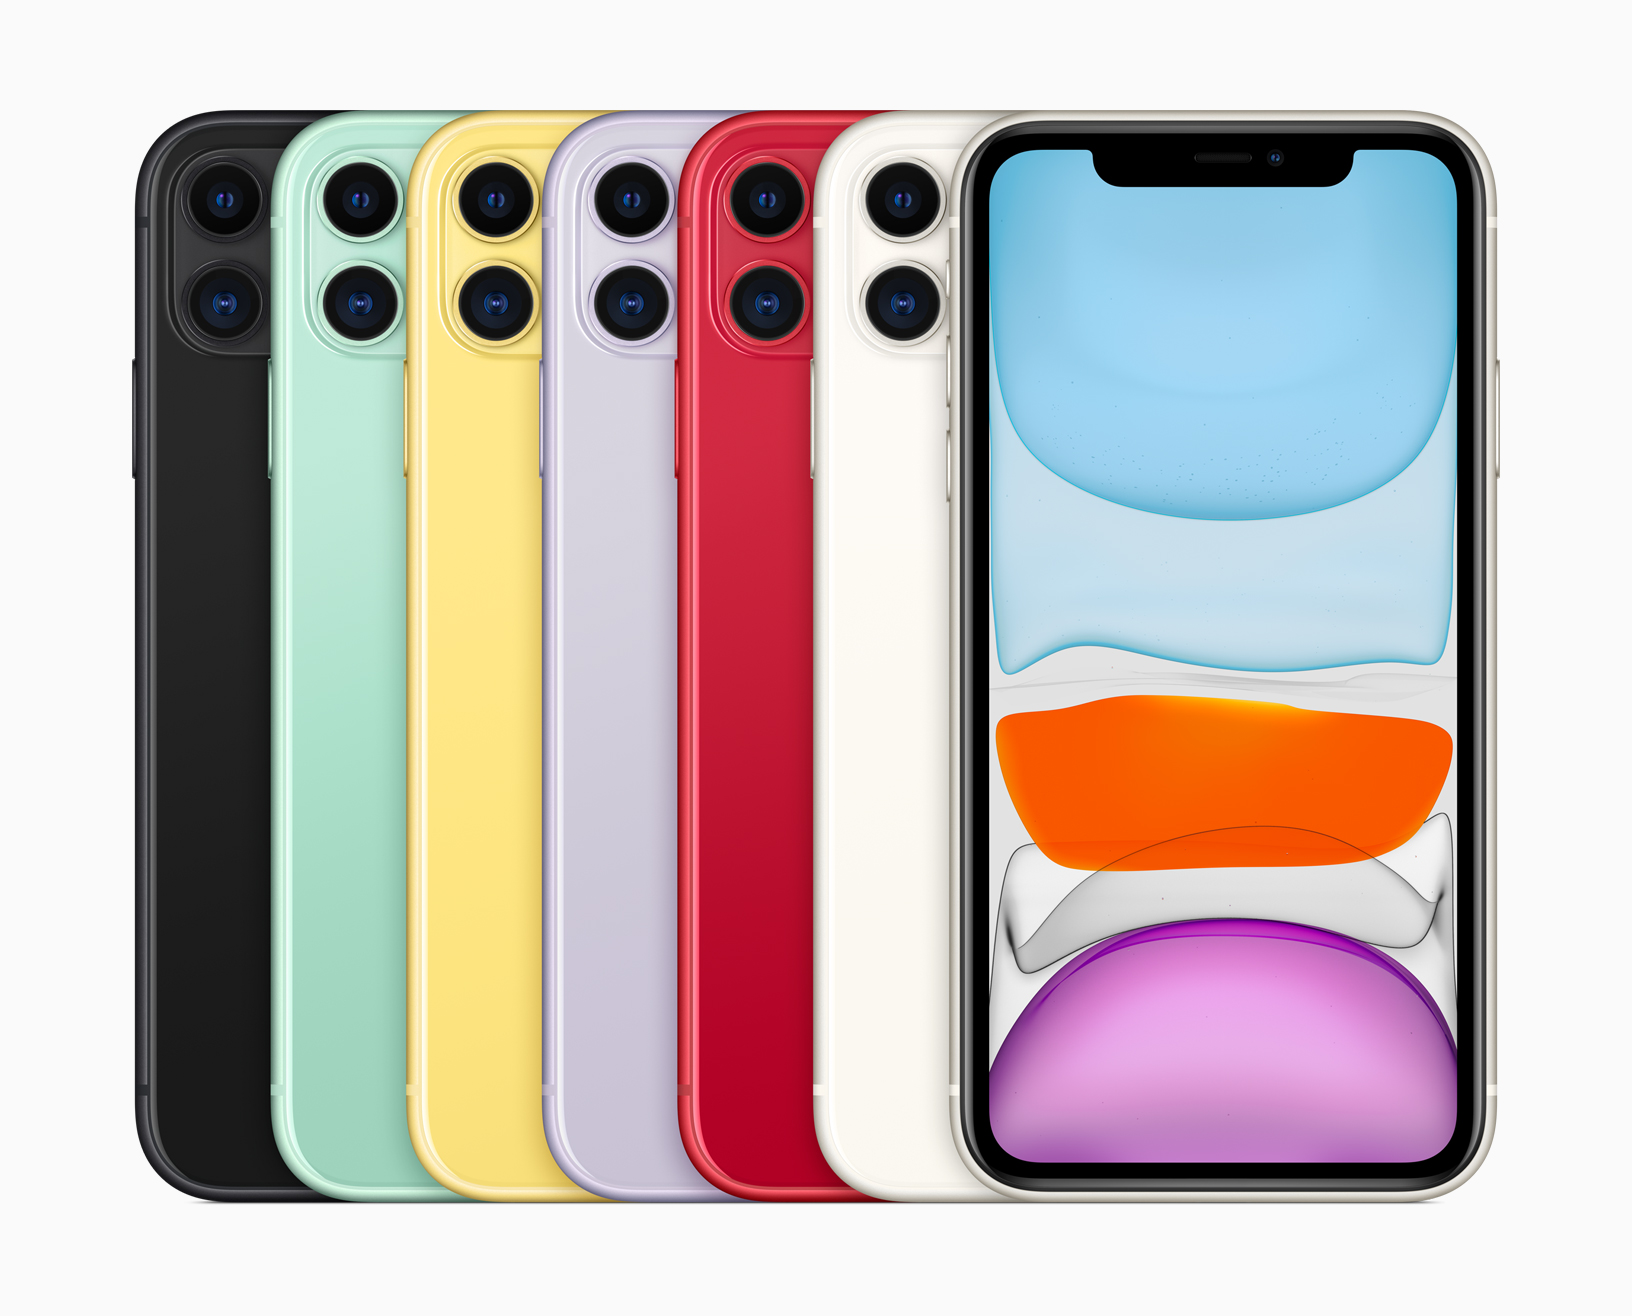 Apple Debuts iPhone 11 - Features A13 Bionic Chip, Dual-Camera Setup, Available in 6 New Colors